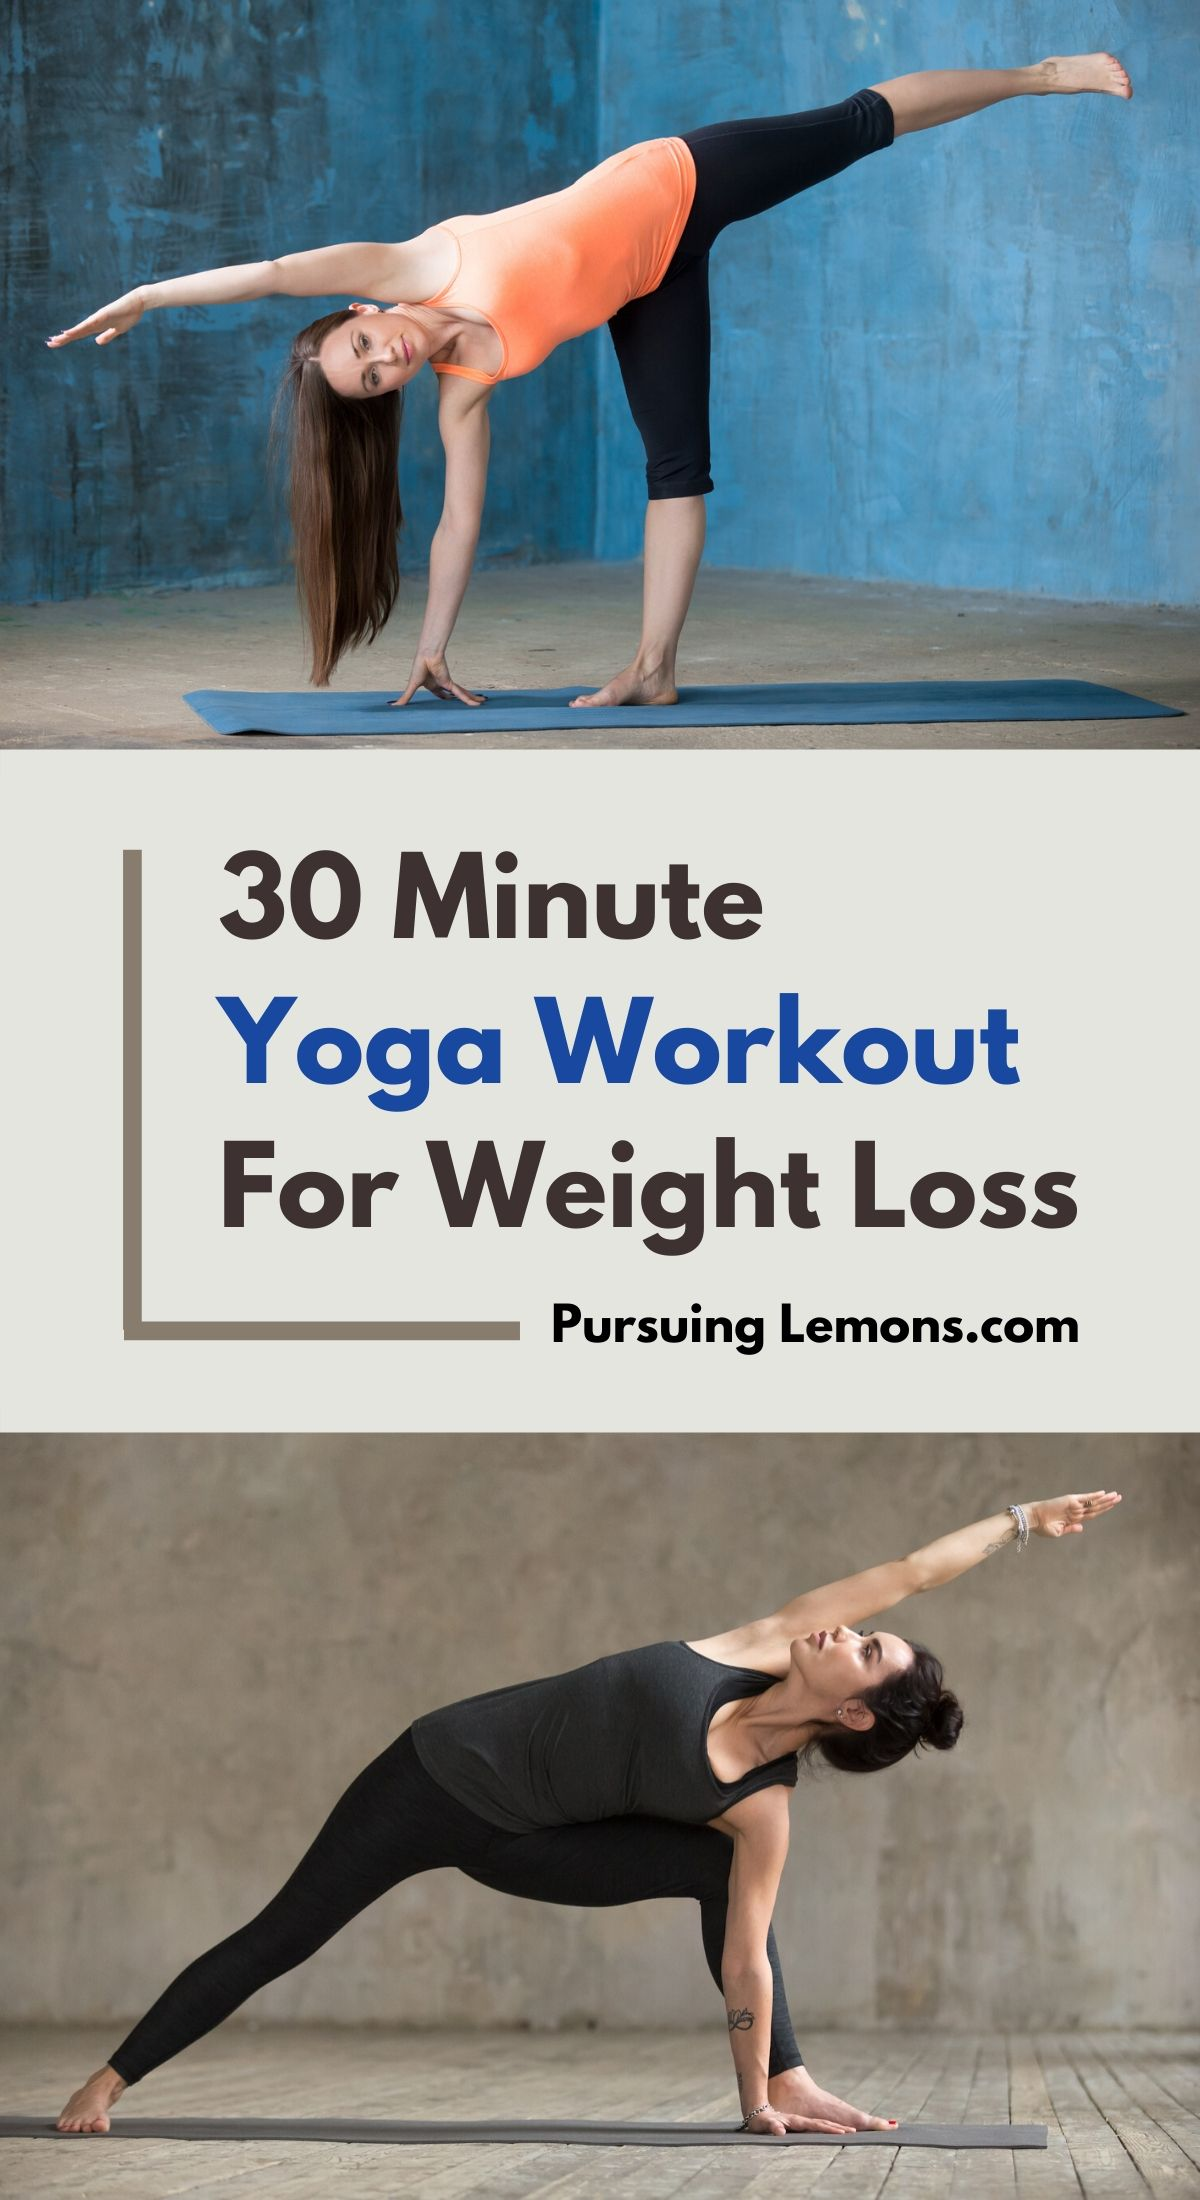 30 Minute Yoga Workout For Weight Loss   Yoga is a great low intensity workout alternative. This yoga routine will help you to lose weight and tone your body. Here's the yoga poses for weight loss that you can do anywhere! #yoga #weightloss #yogaforweightloss